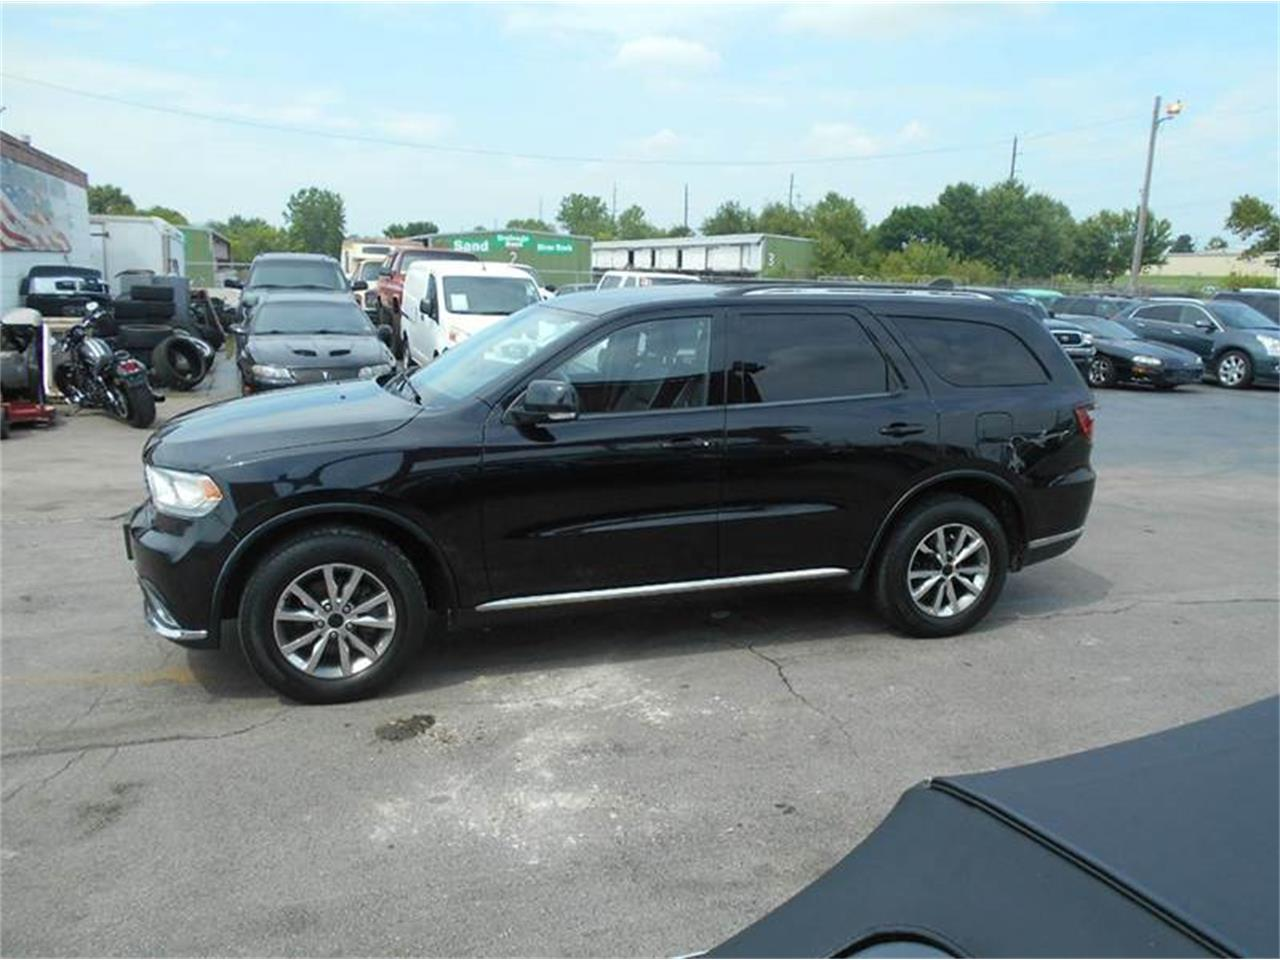 Large Picture of '14 Dodge Durango located in Kansas - $24,980.00 - LHAR